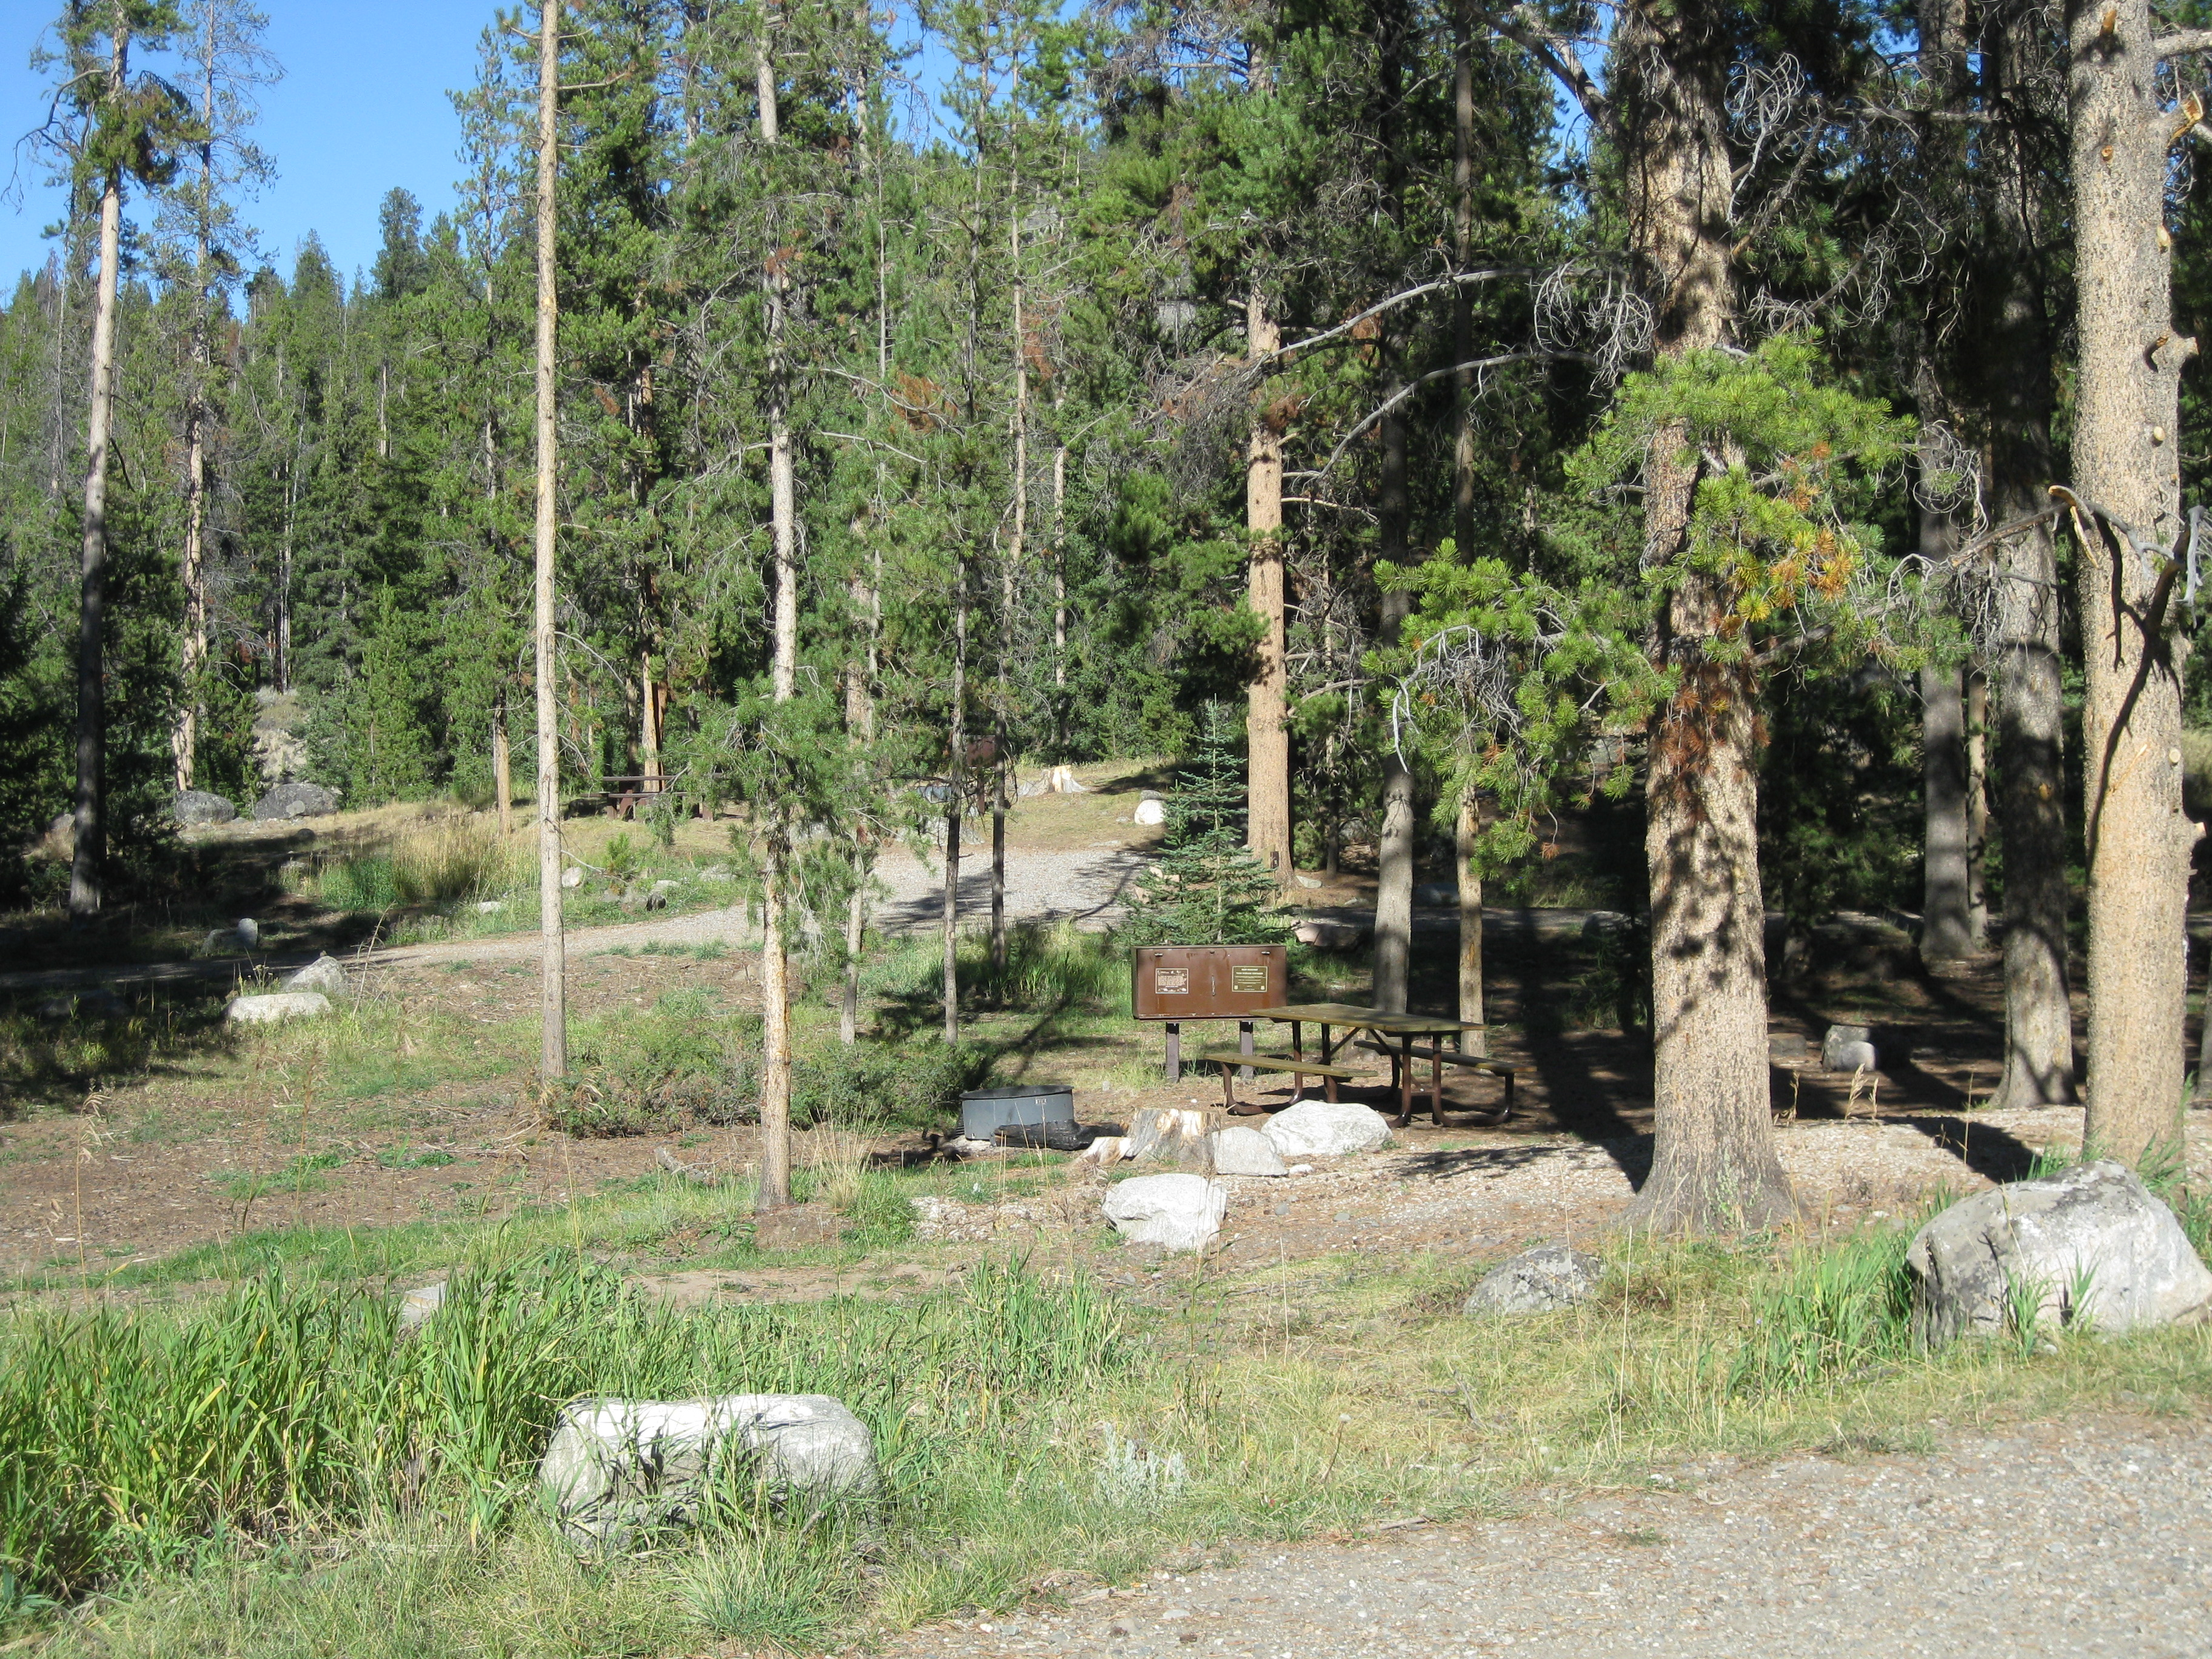 Photograph of Crazy Creek Campground